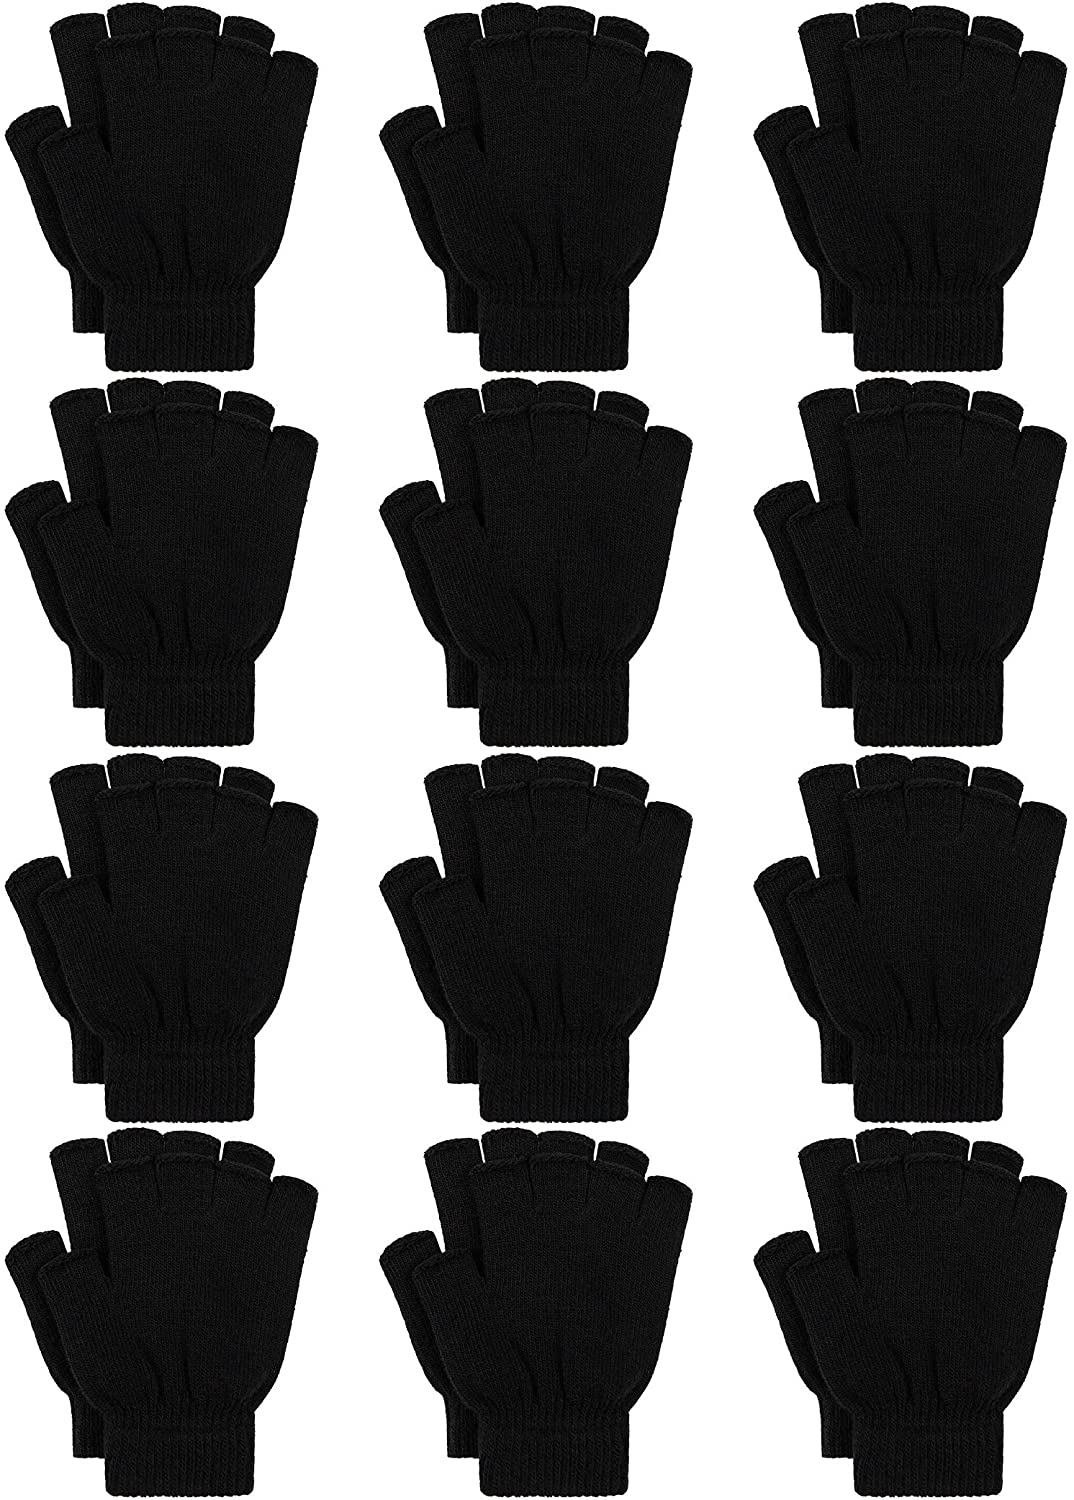 Cooraby 12 Pairs Winter Half Finger Gloves Flexibly Stretchy Knit Fingerless Gloves for Typing Texting